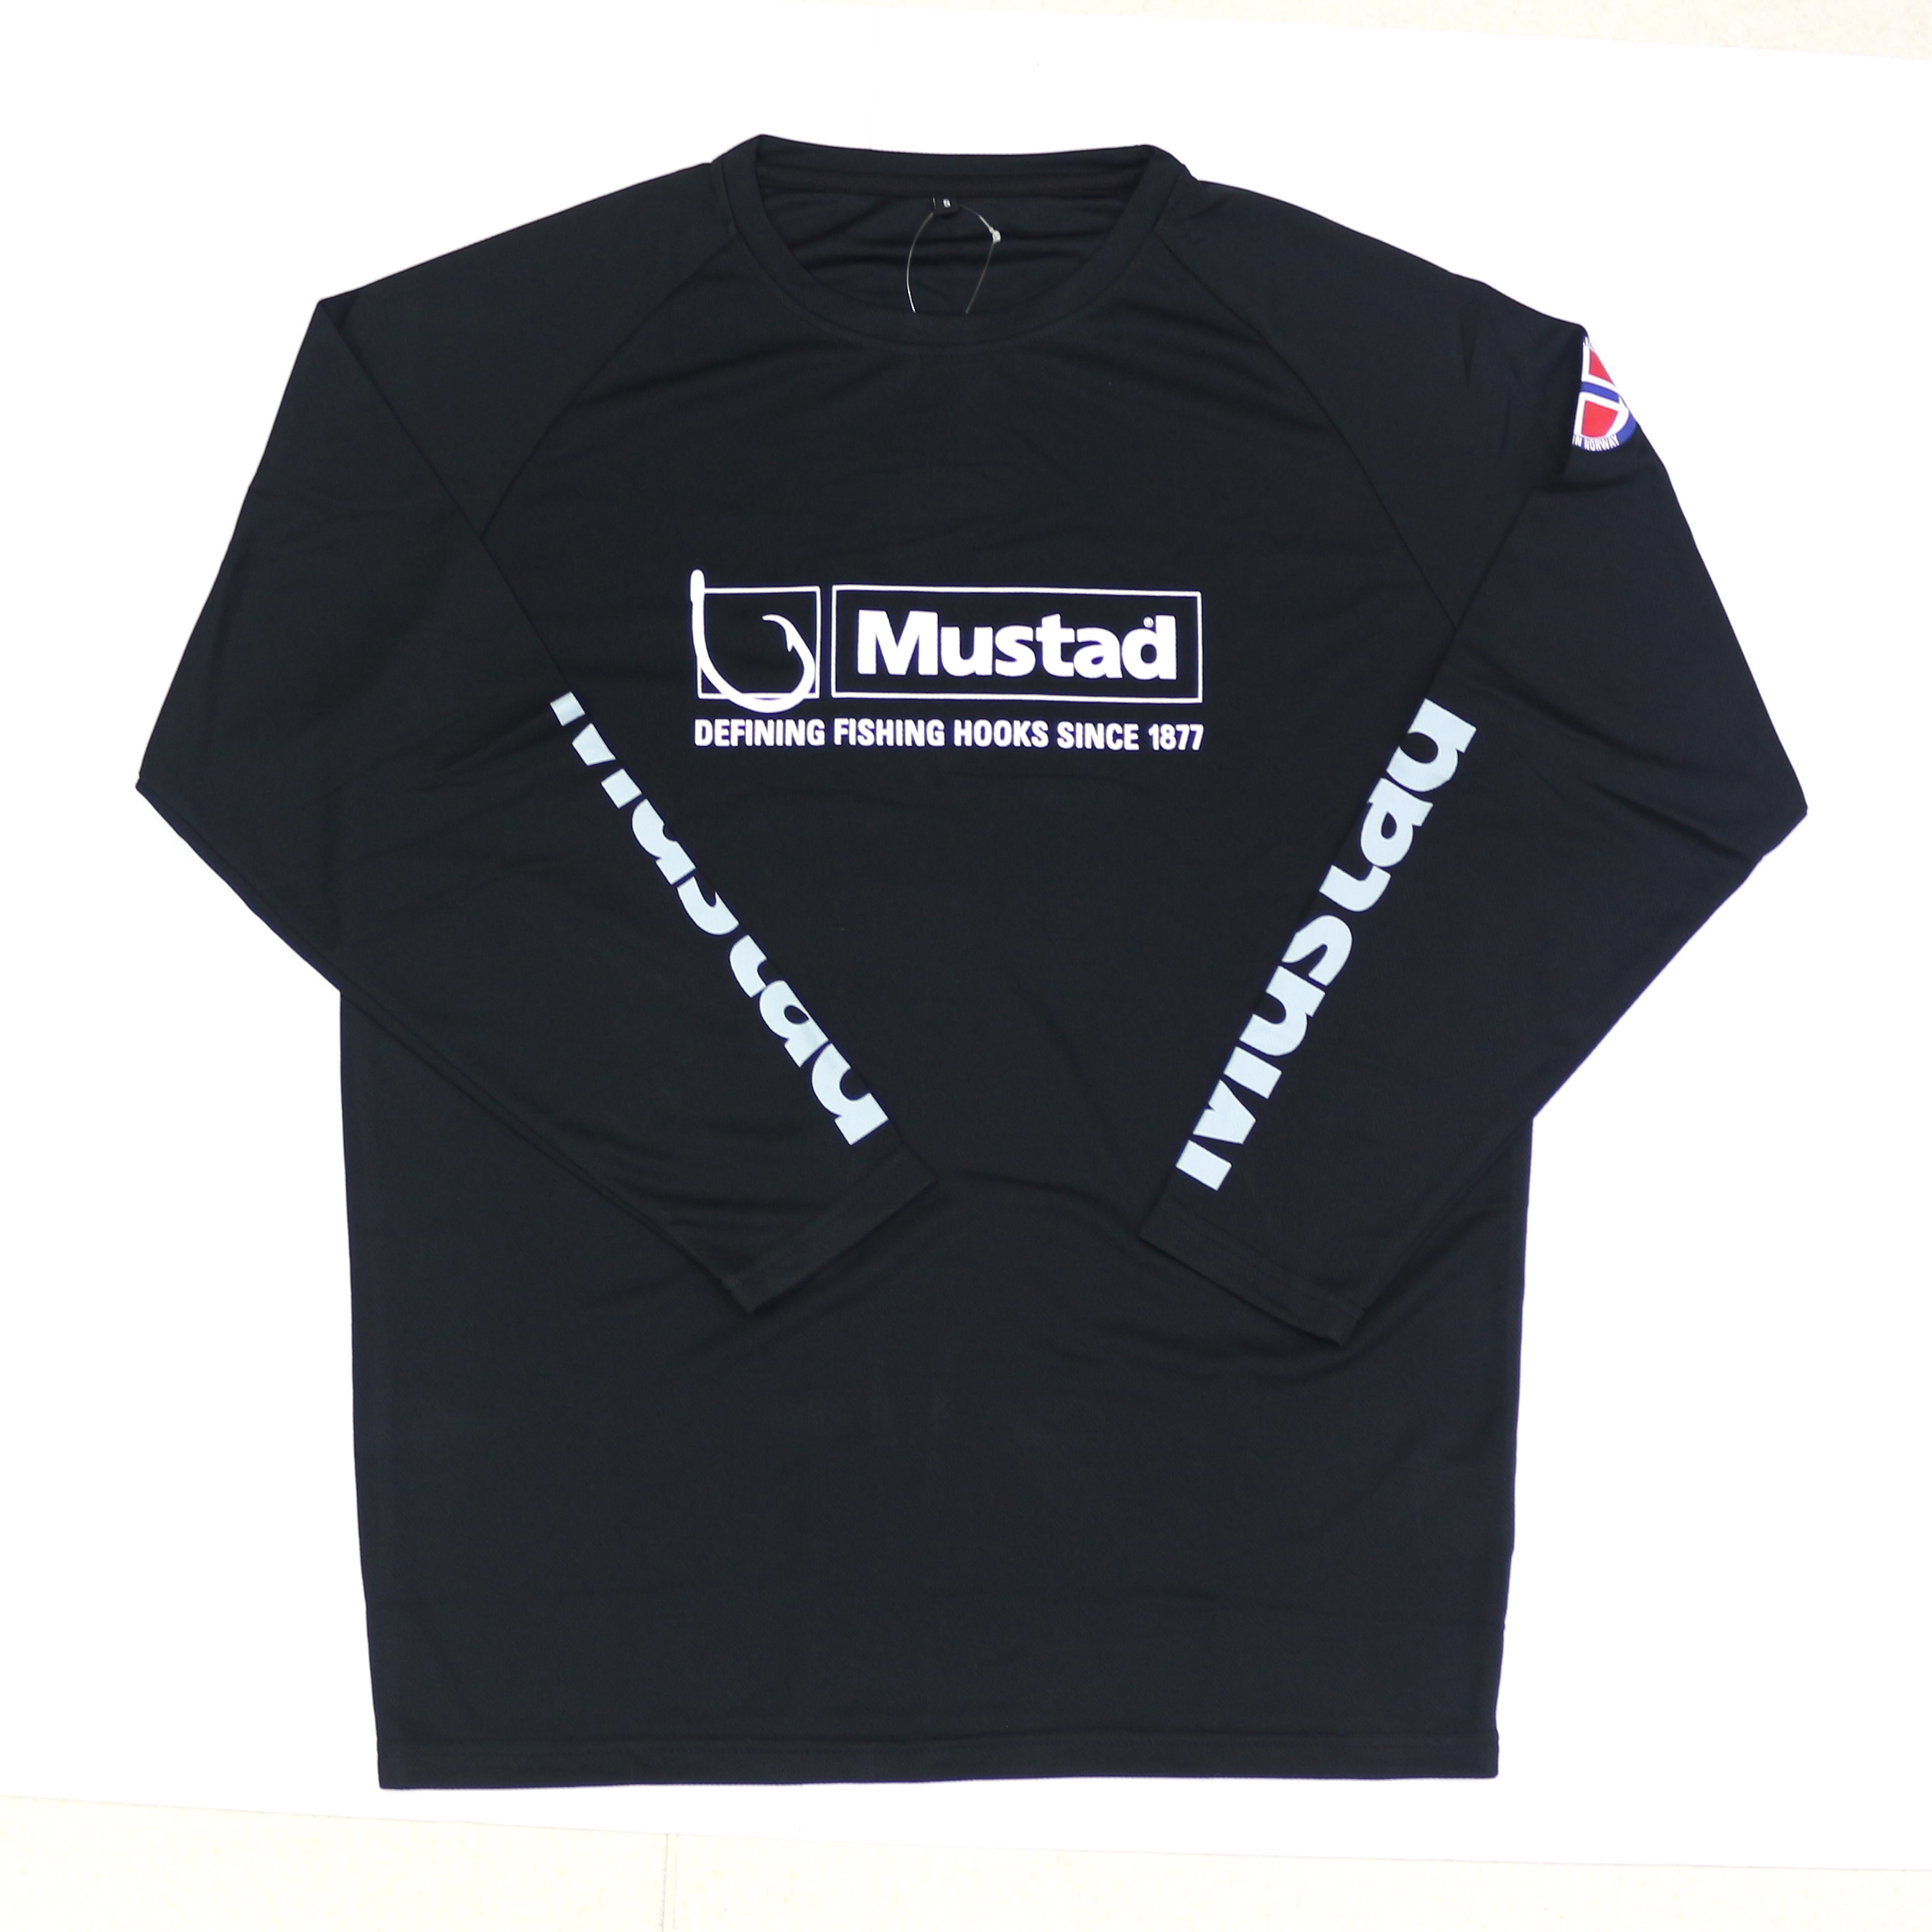 Mustad MCTS01 Long Sleeve Shirt Black Size L (4358)